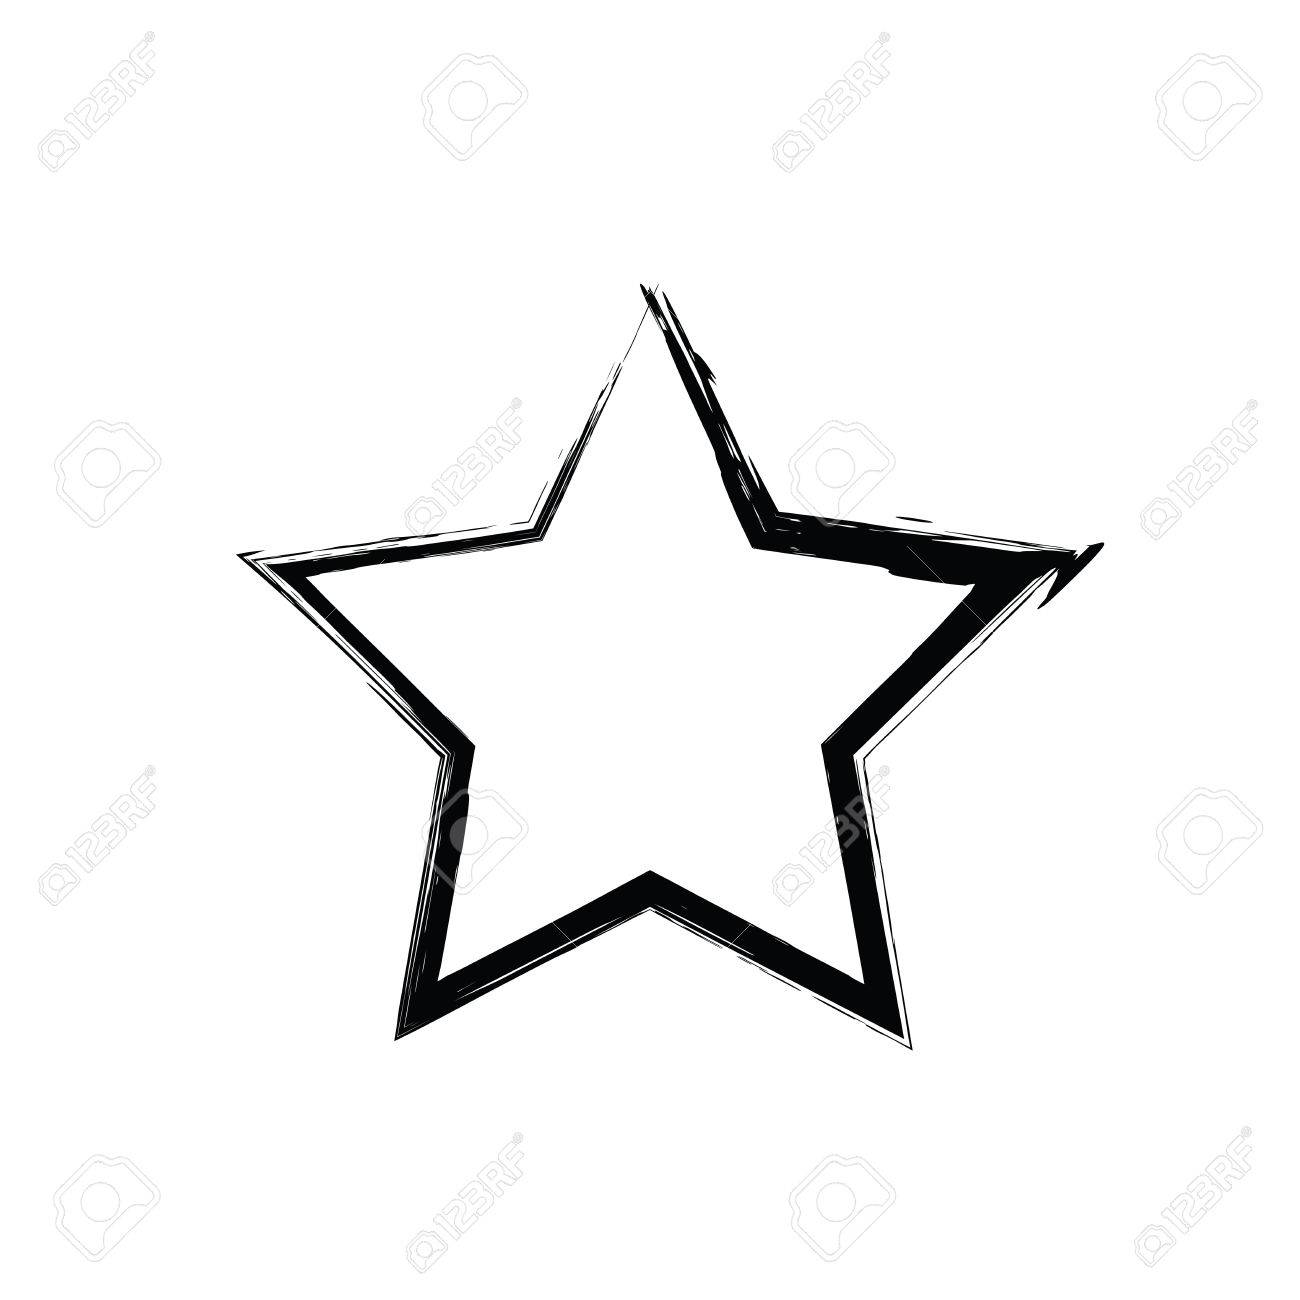 free star vector  Grunge Star Vector. Five-pointed Star. Vector Star Symbol. The ...